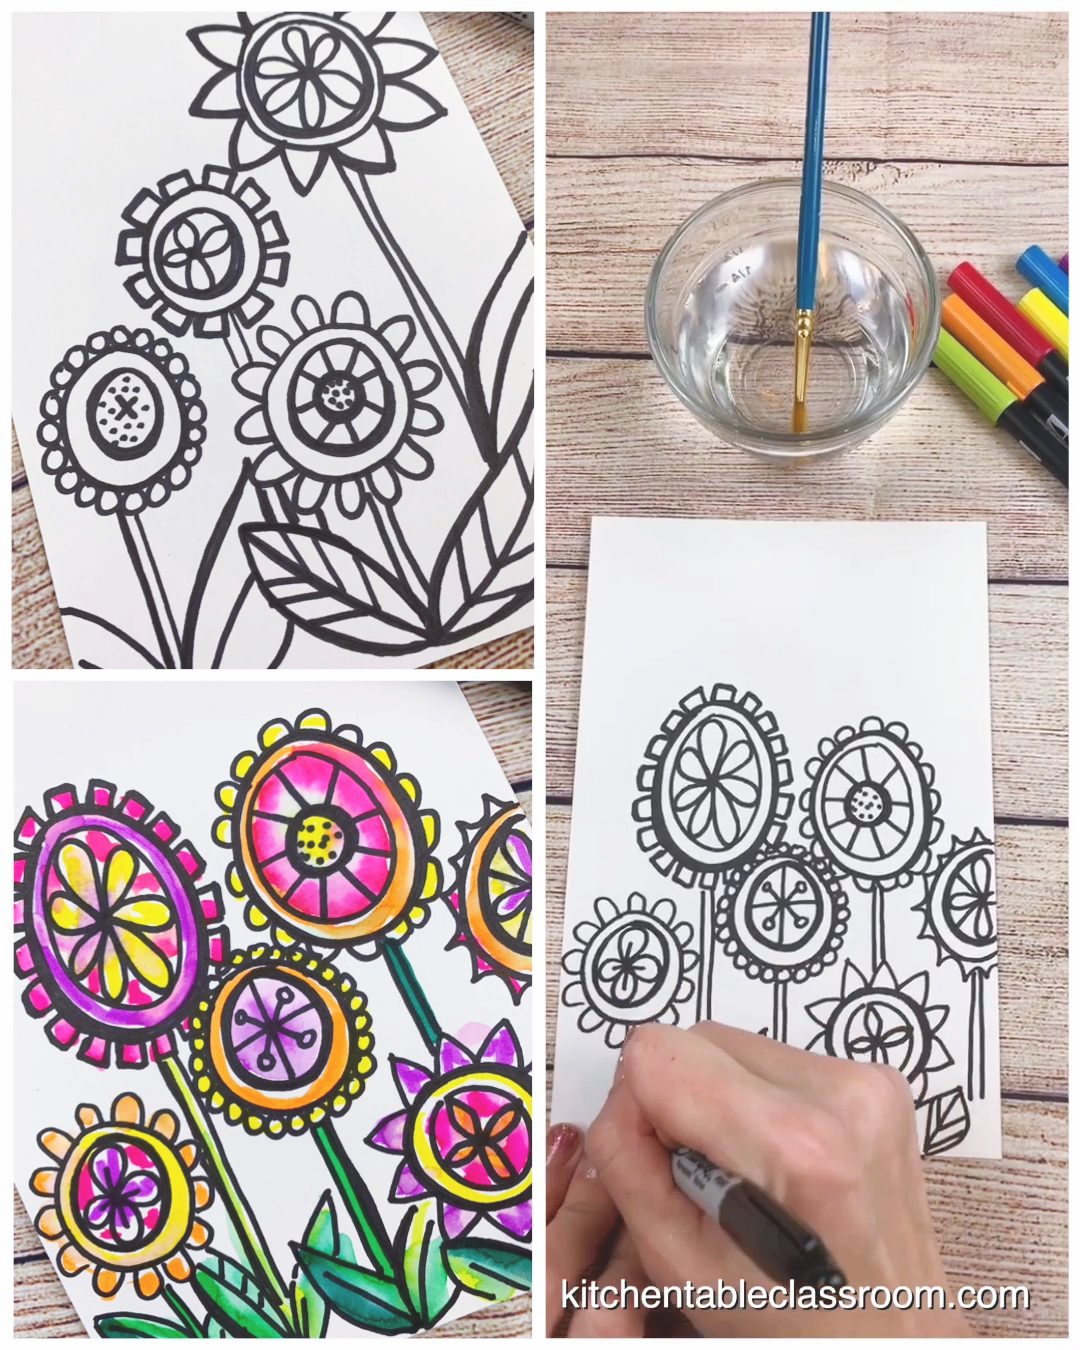 Draw A Flower A Colorful Directed Drawing Exercise The Kitchen Table Classroom En 2020 Tutorial De Arte Lecciones De Arte Drawing Lessons